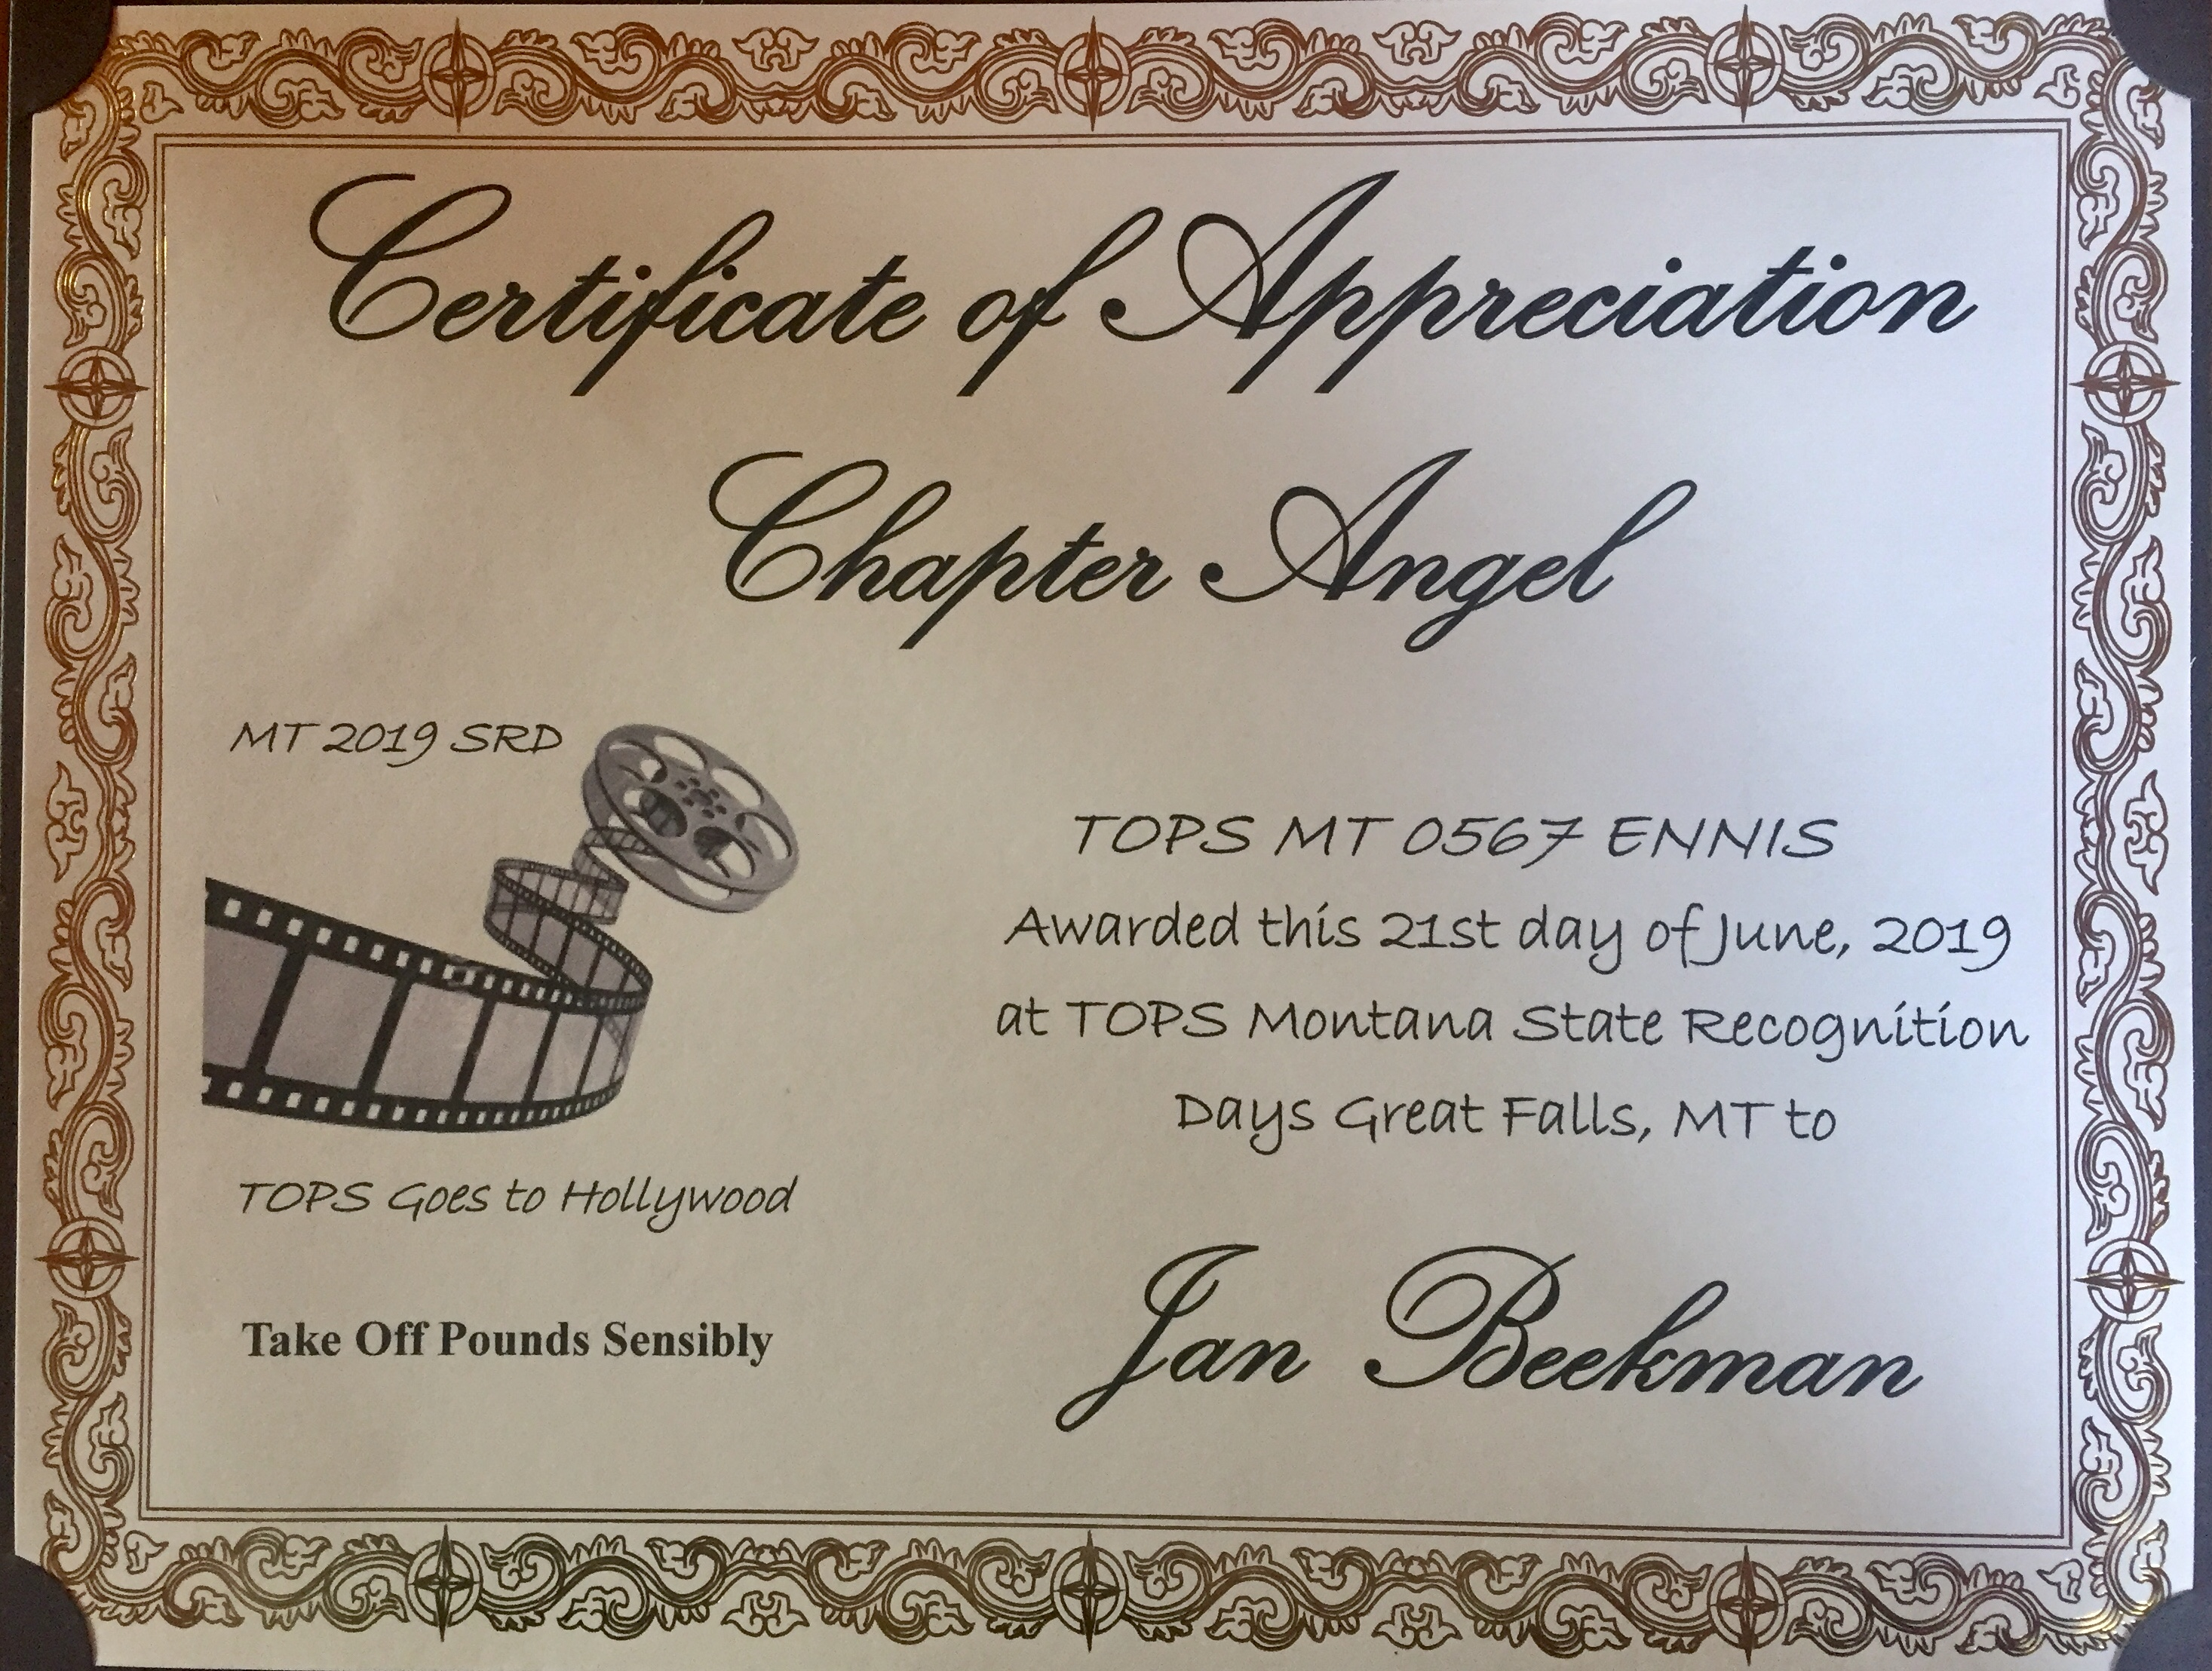 Tops-angel-certificate.jpg